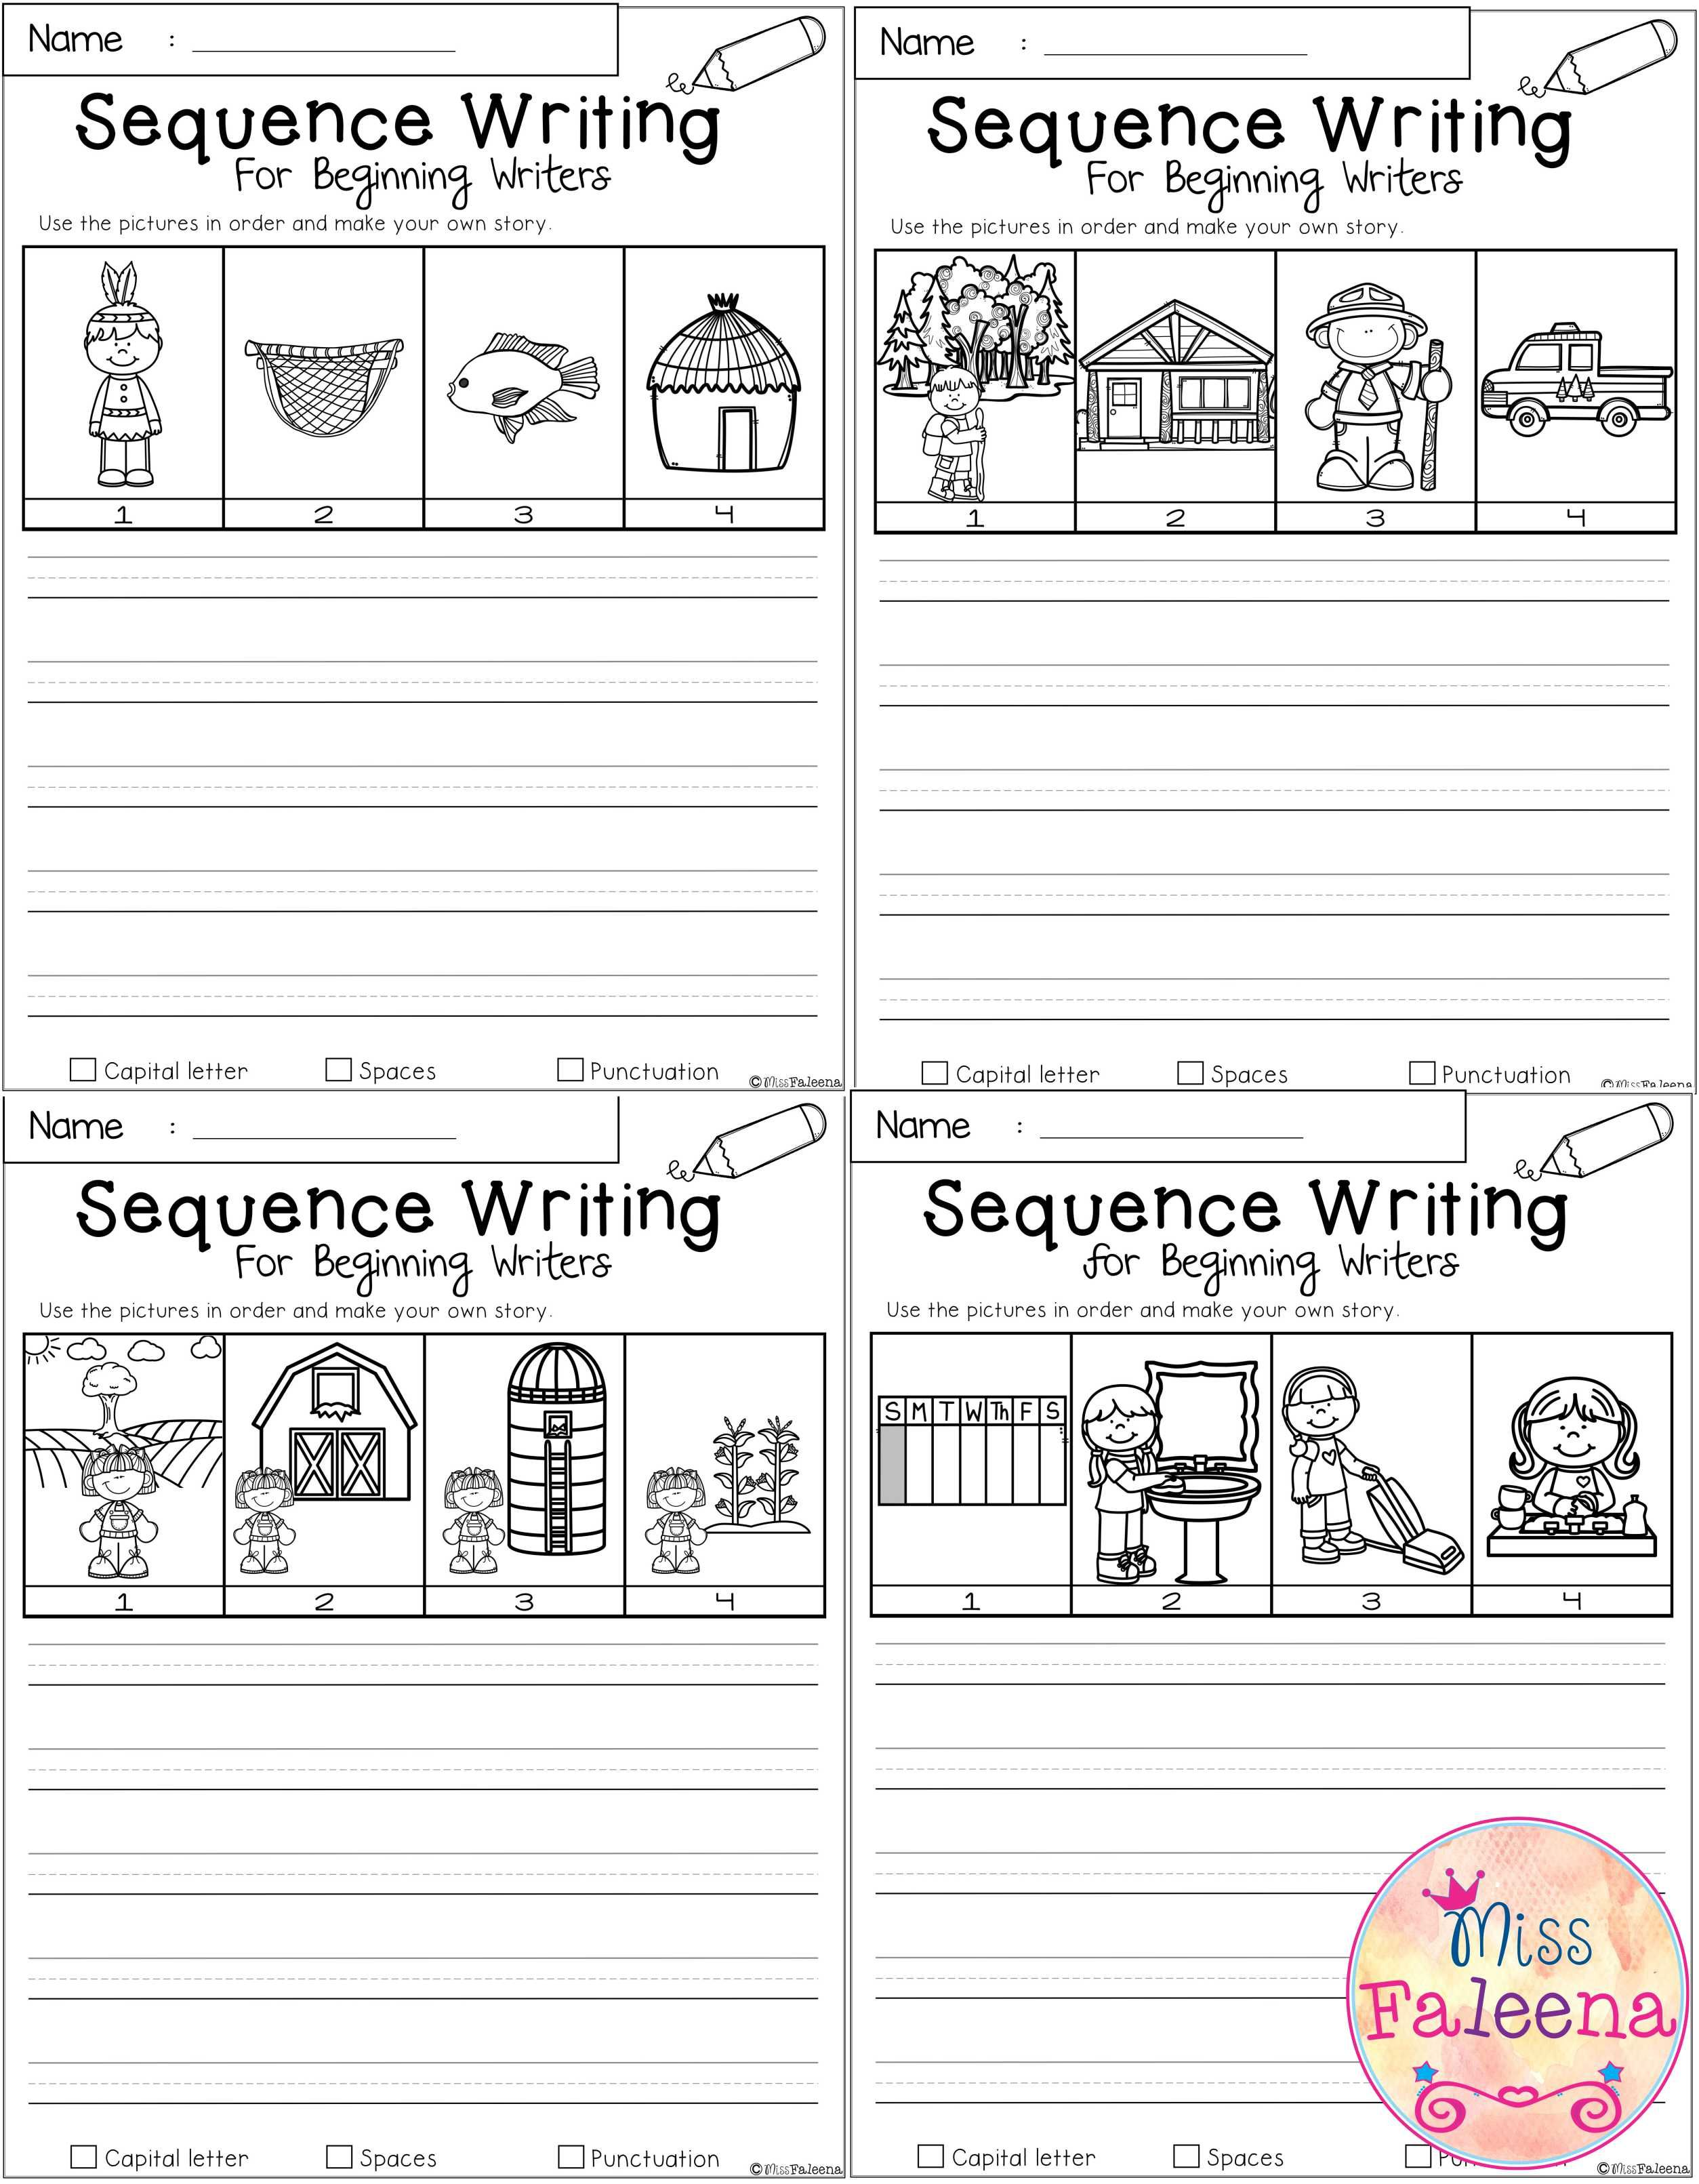 September Sequence Writing For Beginning Writers